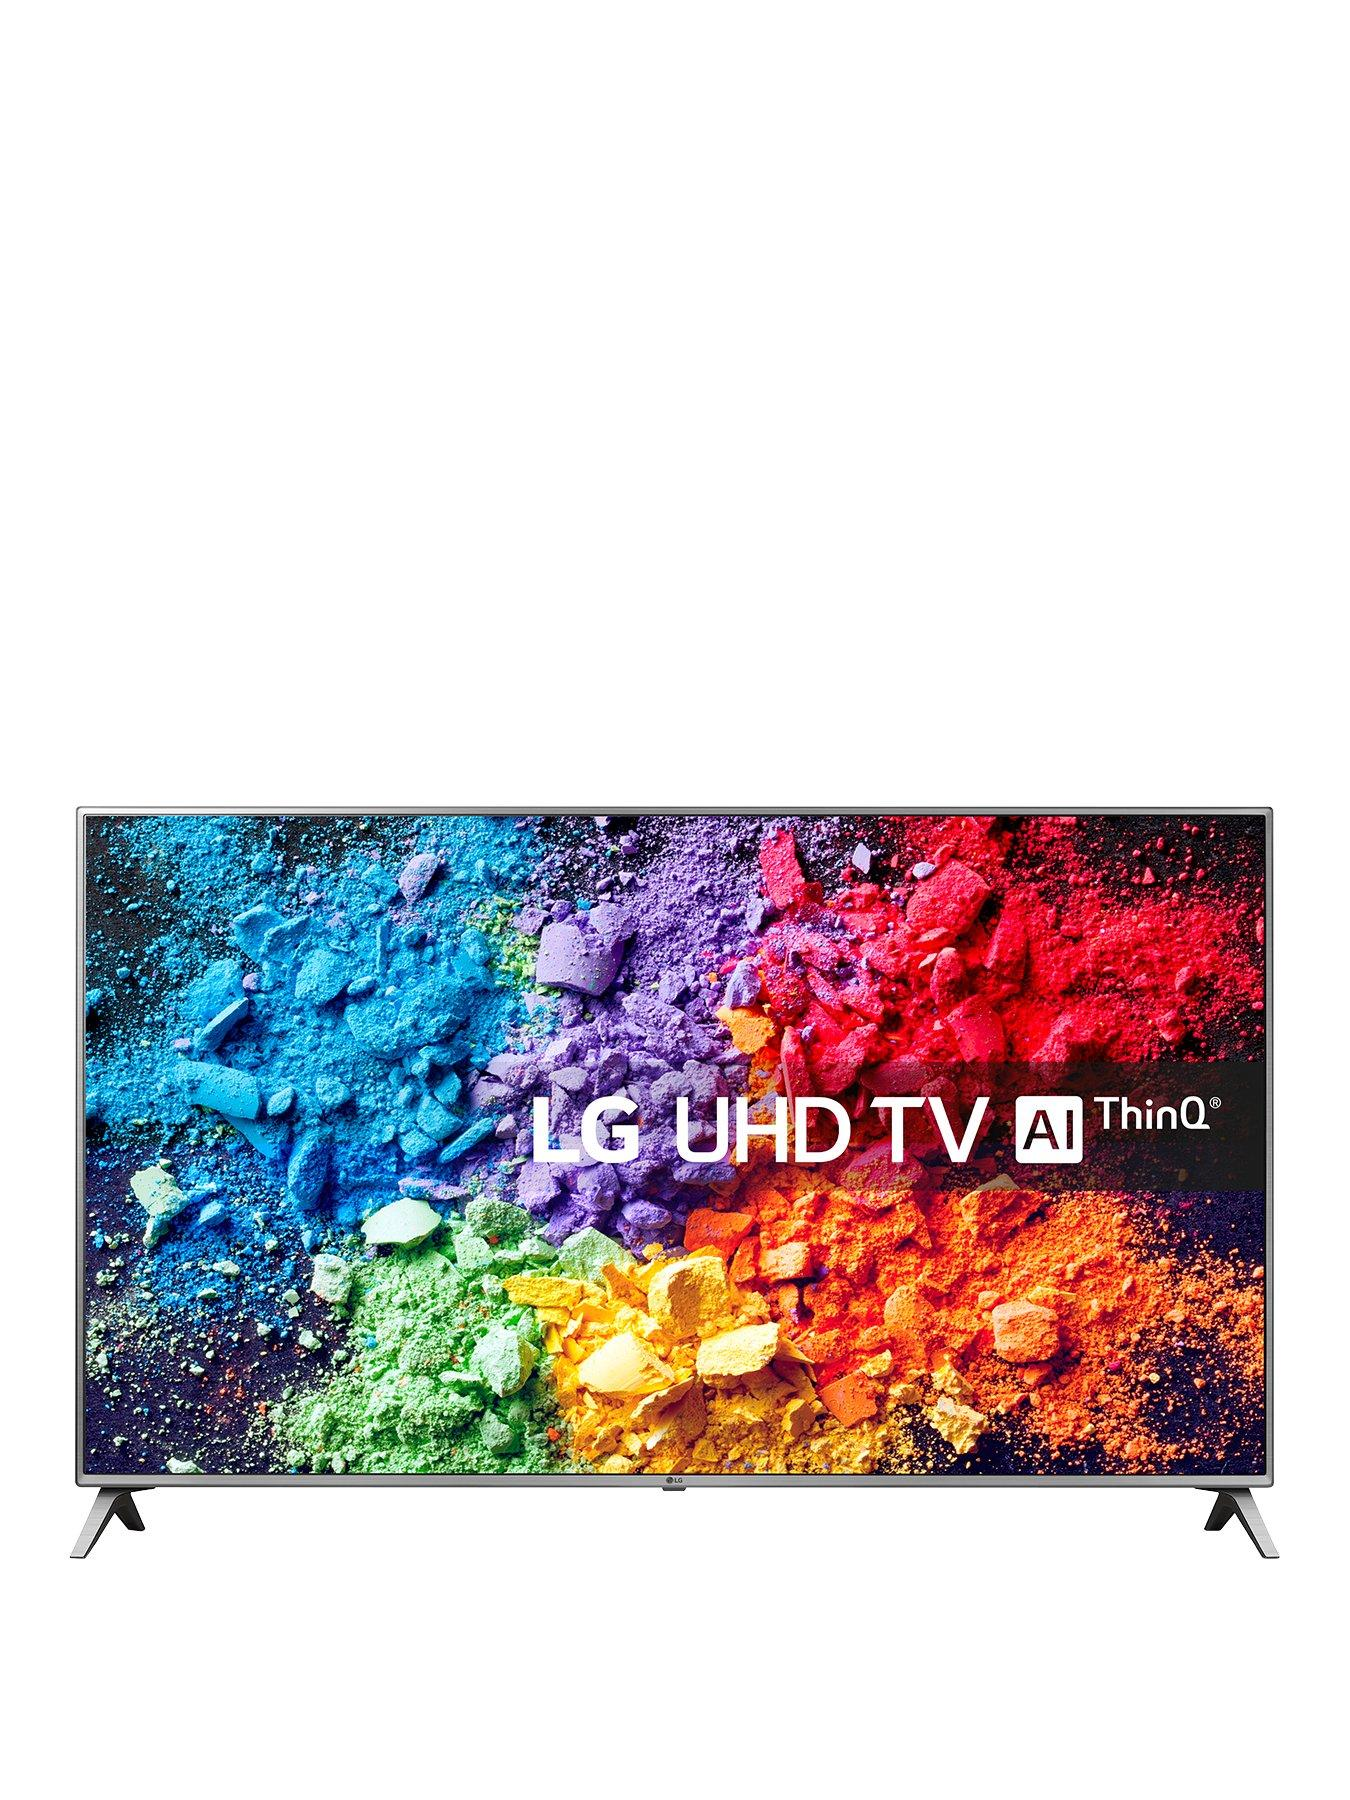 LG 55UK6500PLA 55 inch, Ultra HD, 4K HDR, Freeview Play, Smart, TV - Steel Silver \u0026 Black 51 inch to TVs | 51-55"|1350|1800|?|9087d9fdf81808a1013fc74e76a5cfb8|False|UNLIKELY|0.3205656111240387